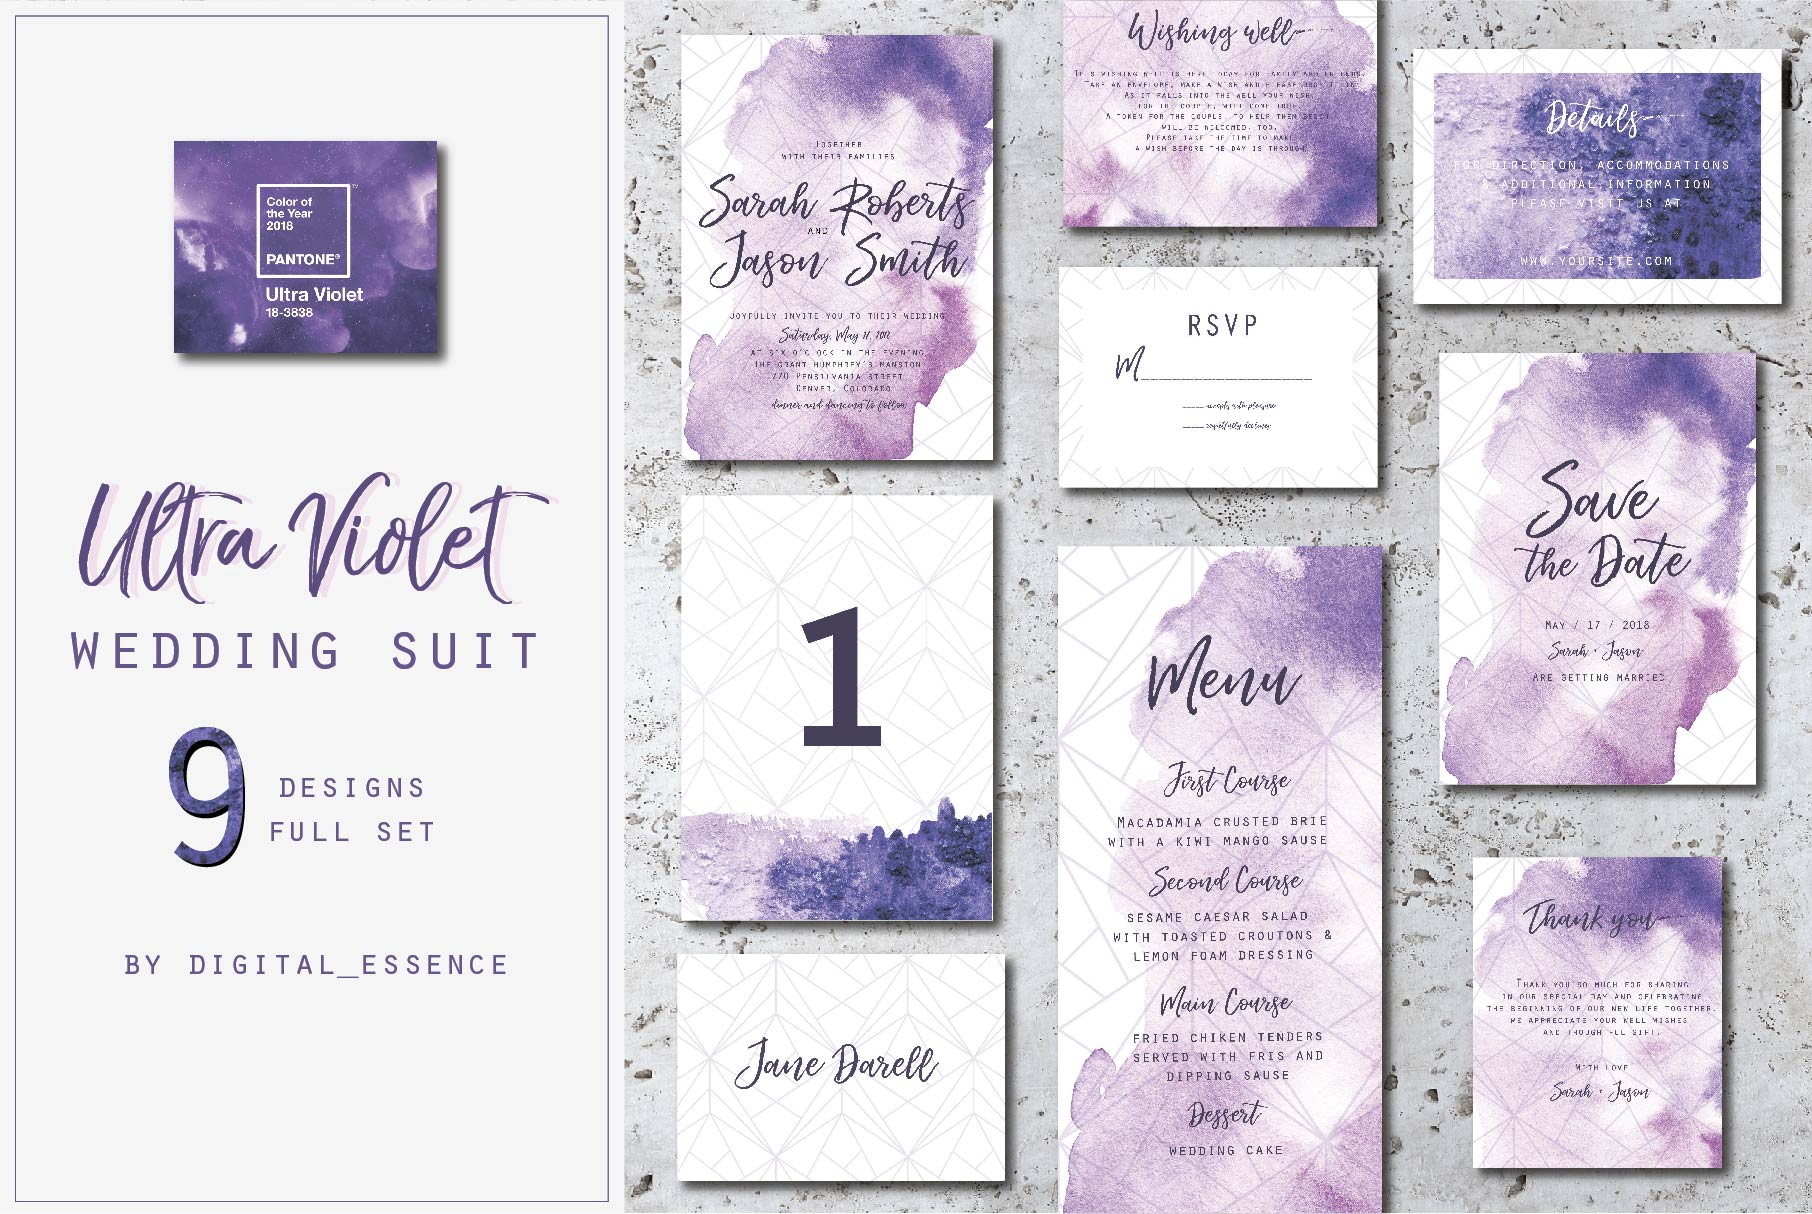 Ultra violet wedding invitation suit example image 1